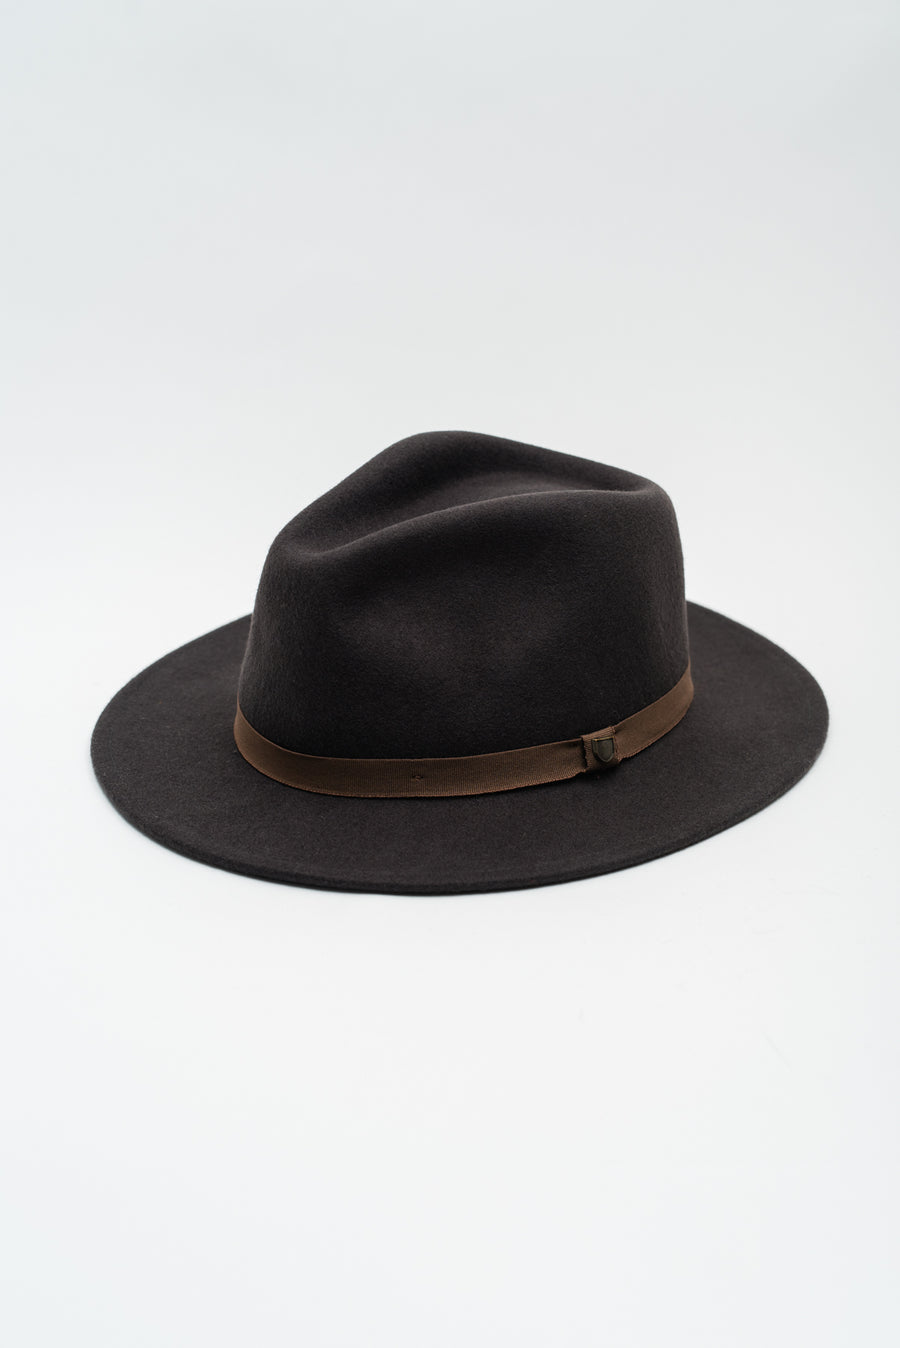 Messer Packable Fedora - Washed Black/Light Brown